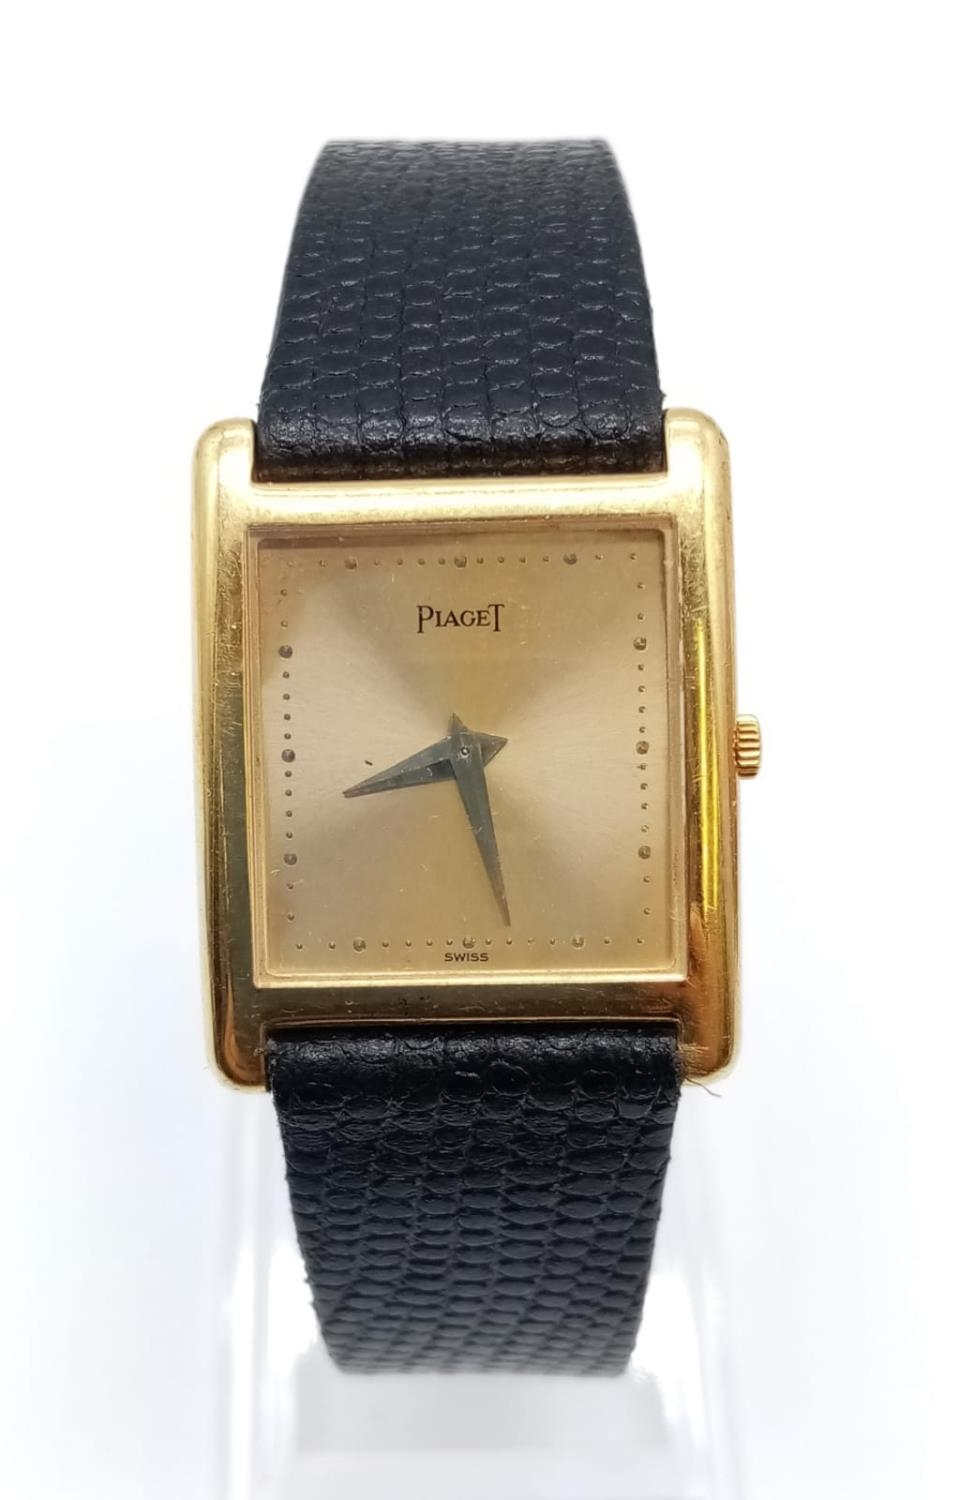 Vintage Plaget 18ct gold ladies watch with square face (22mm) and leather strap